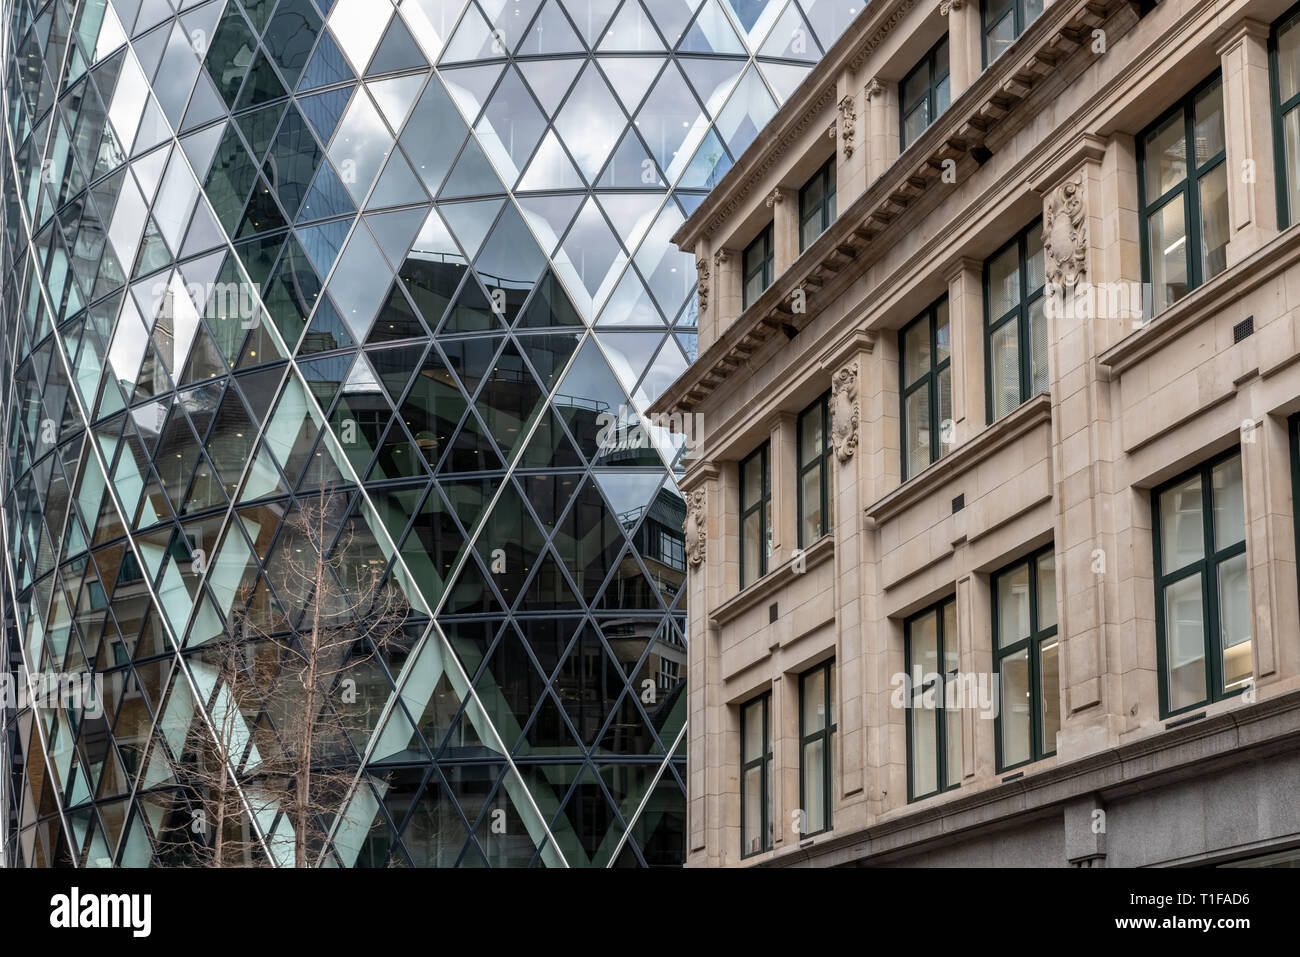 The curved glass and steel of the 'Gherkin' contrast with the more classical design of the buildings in Bury St, City of London - Stock Image